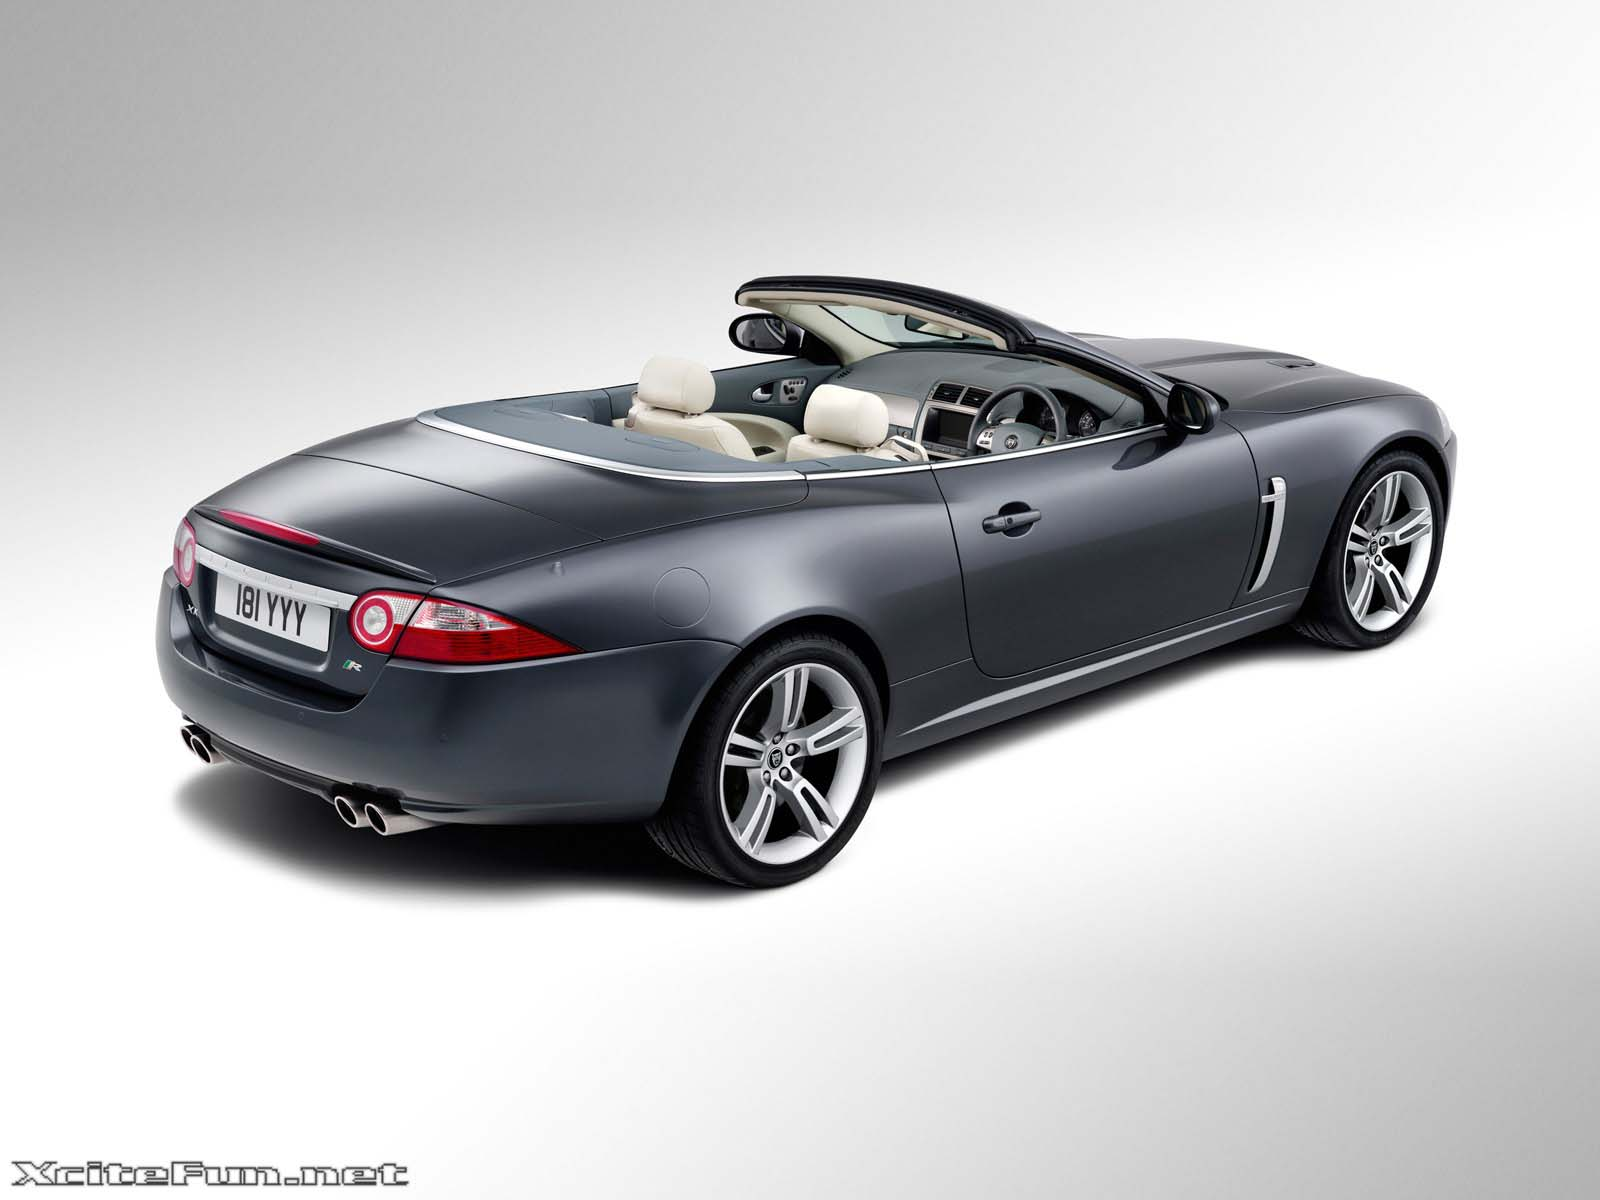 Jaguar Xkr Stylish And Traditional Luxury Car Wallpapers